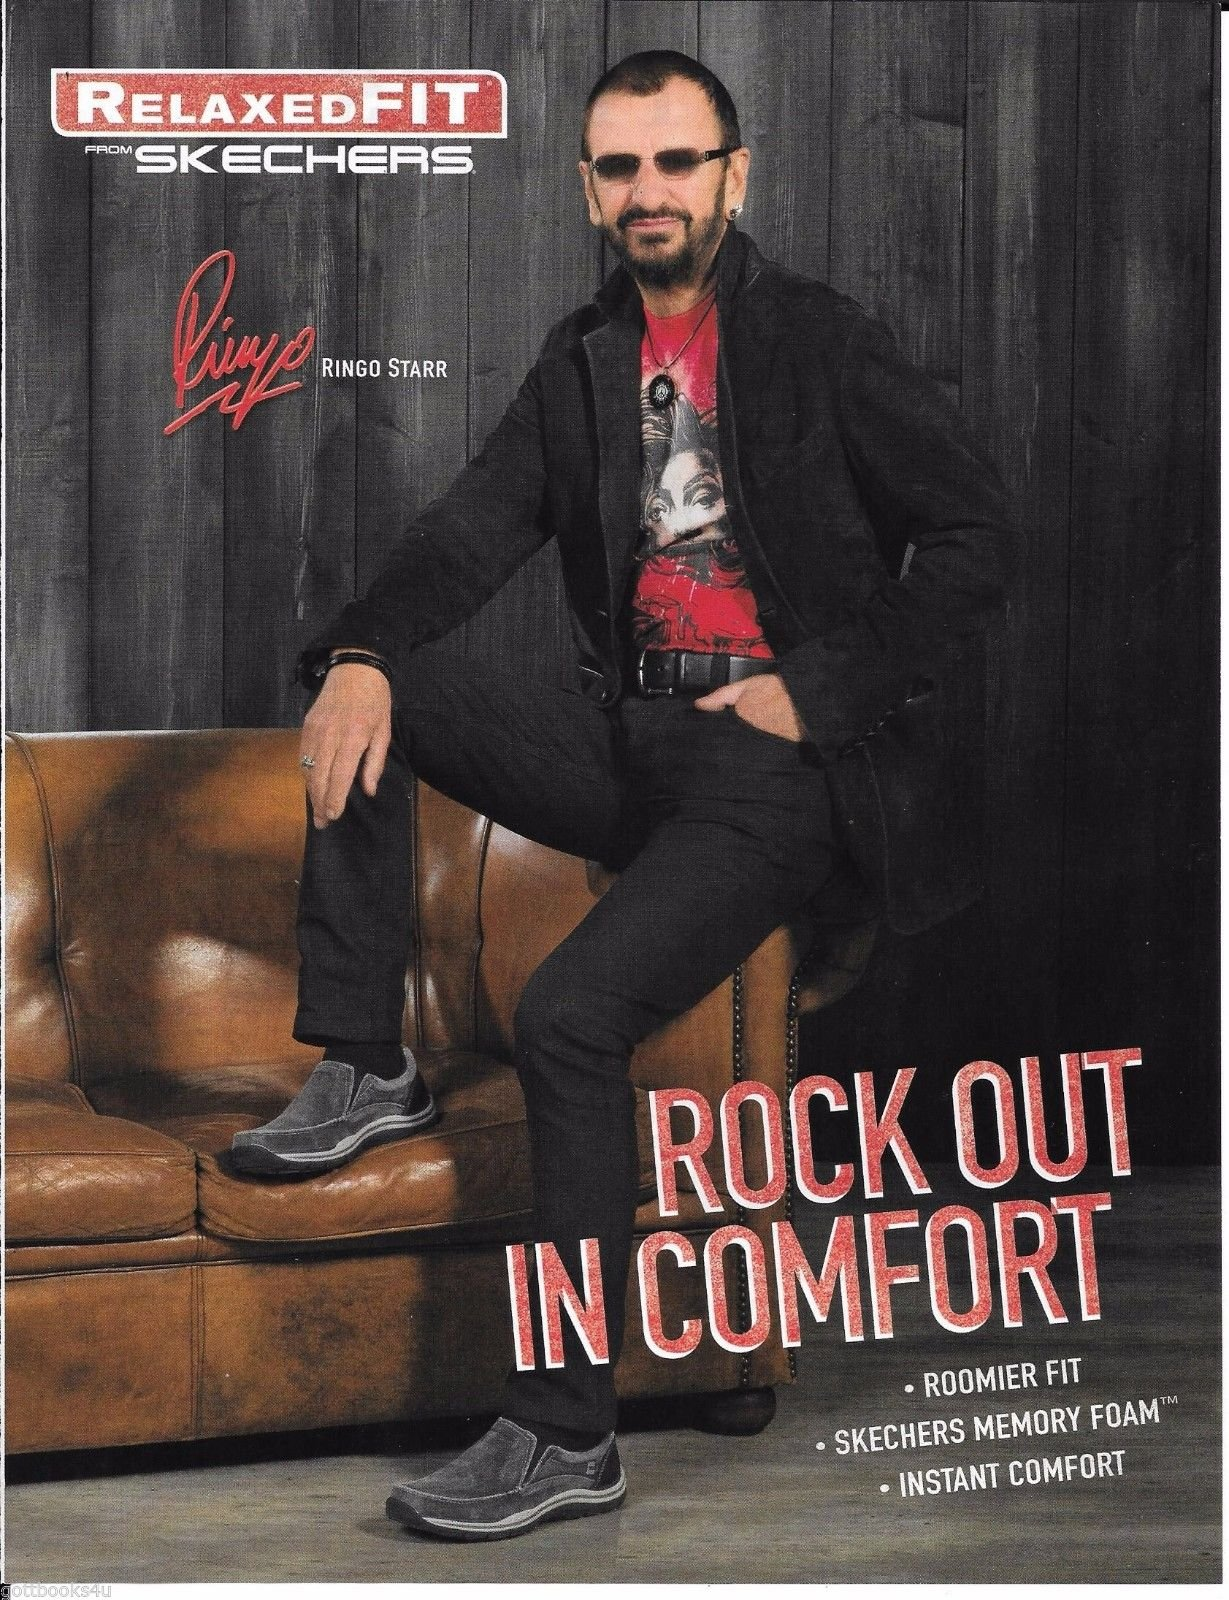 Skechers - Relaxed Fit - Ringo Starr